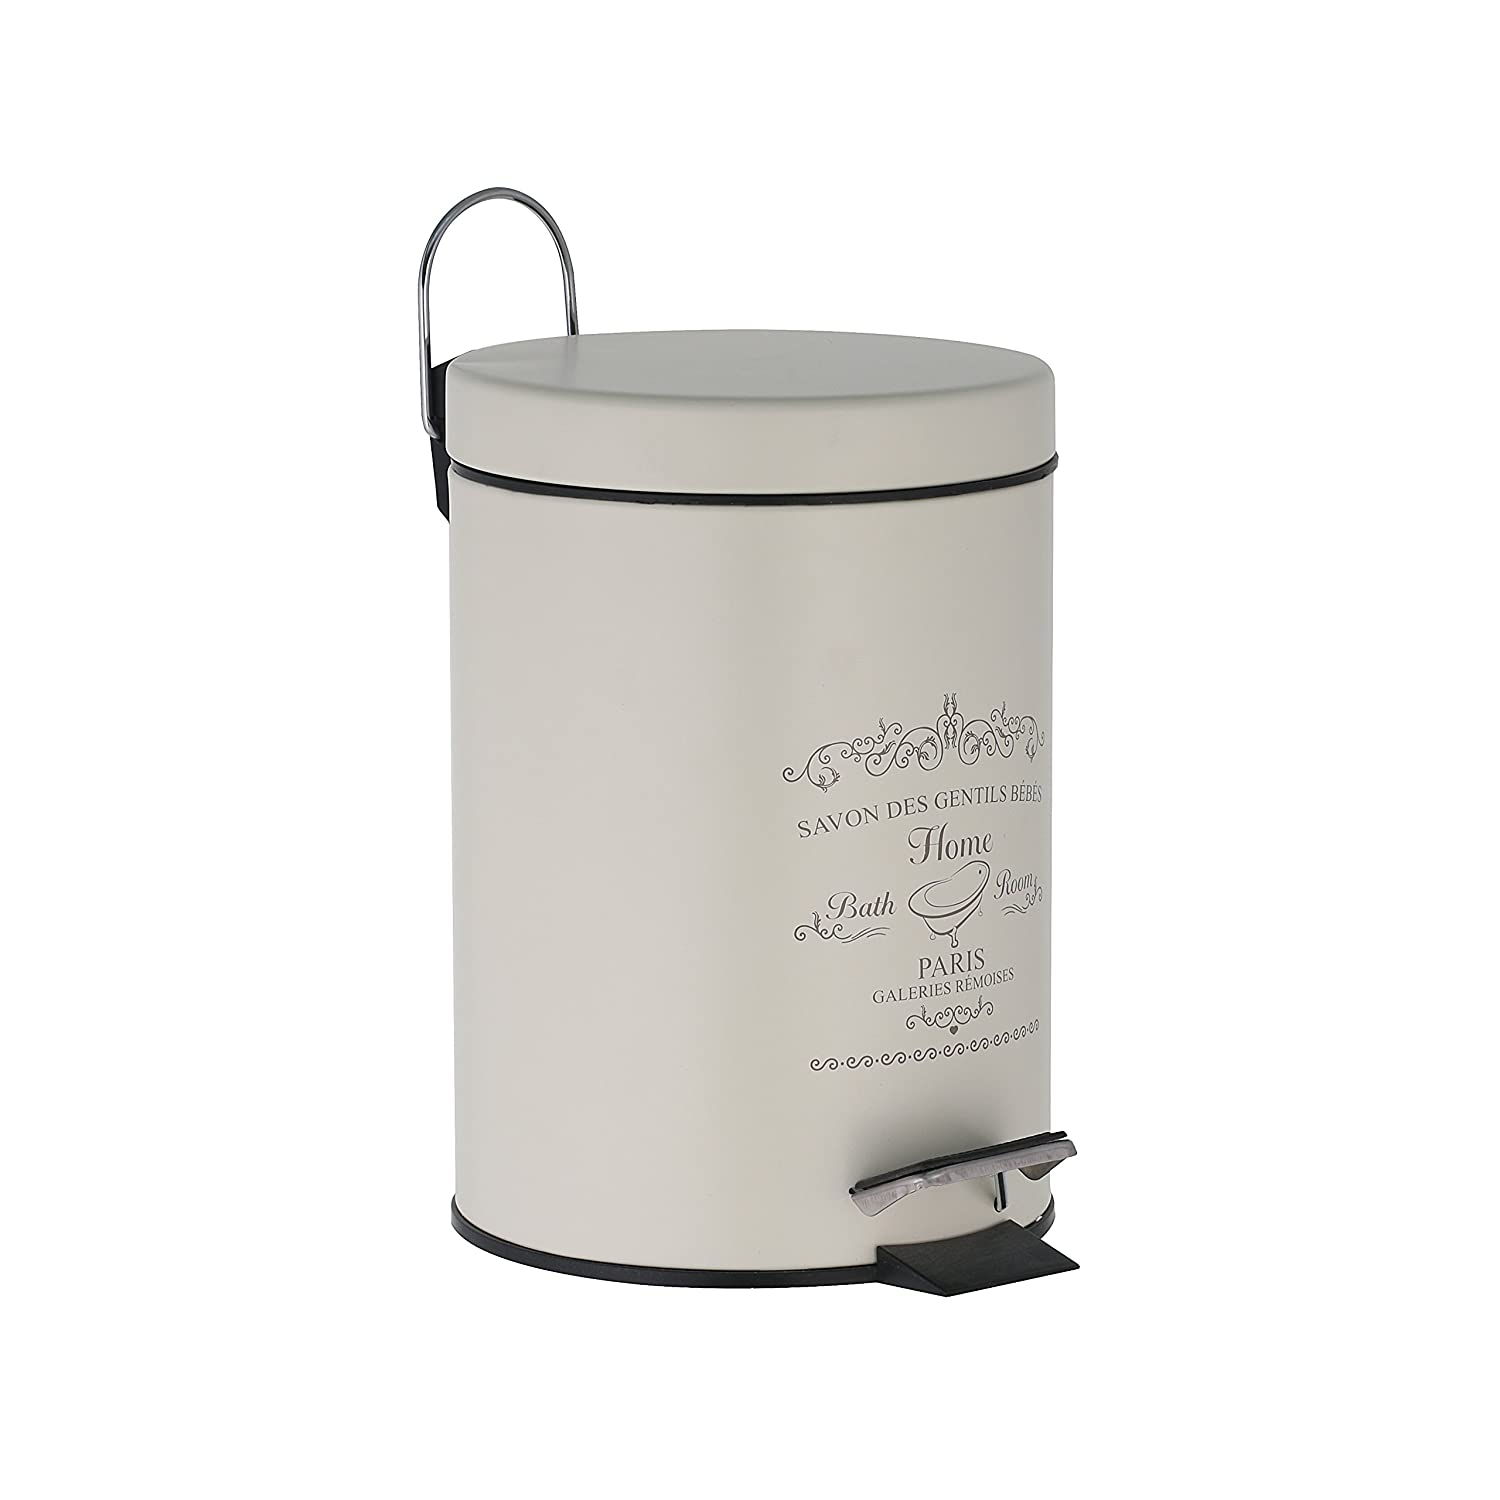 "Axentia Cosmetic Bin ""Paris"", Dustbin Stainless Steel as Bathroom Accessory, Waste Bin with 3 Litres Volume, Pedal-Bin For Bathroom, Approx. Diameter 17 x 24.5 cm, Antique White 126794"